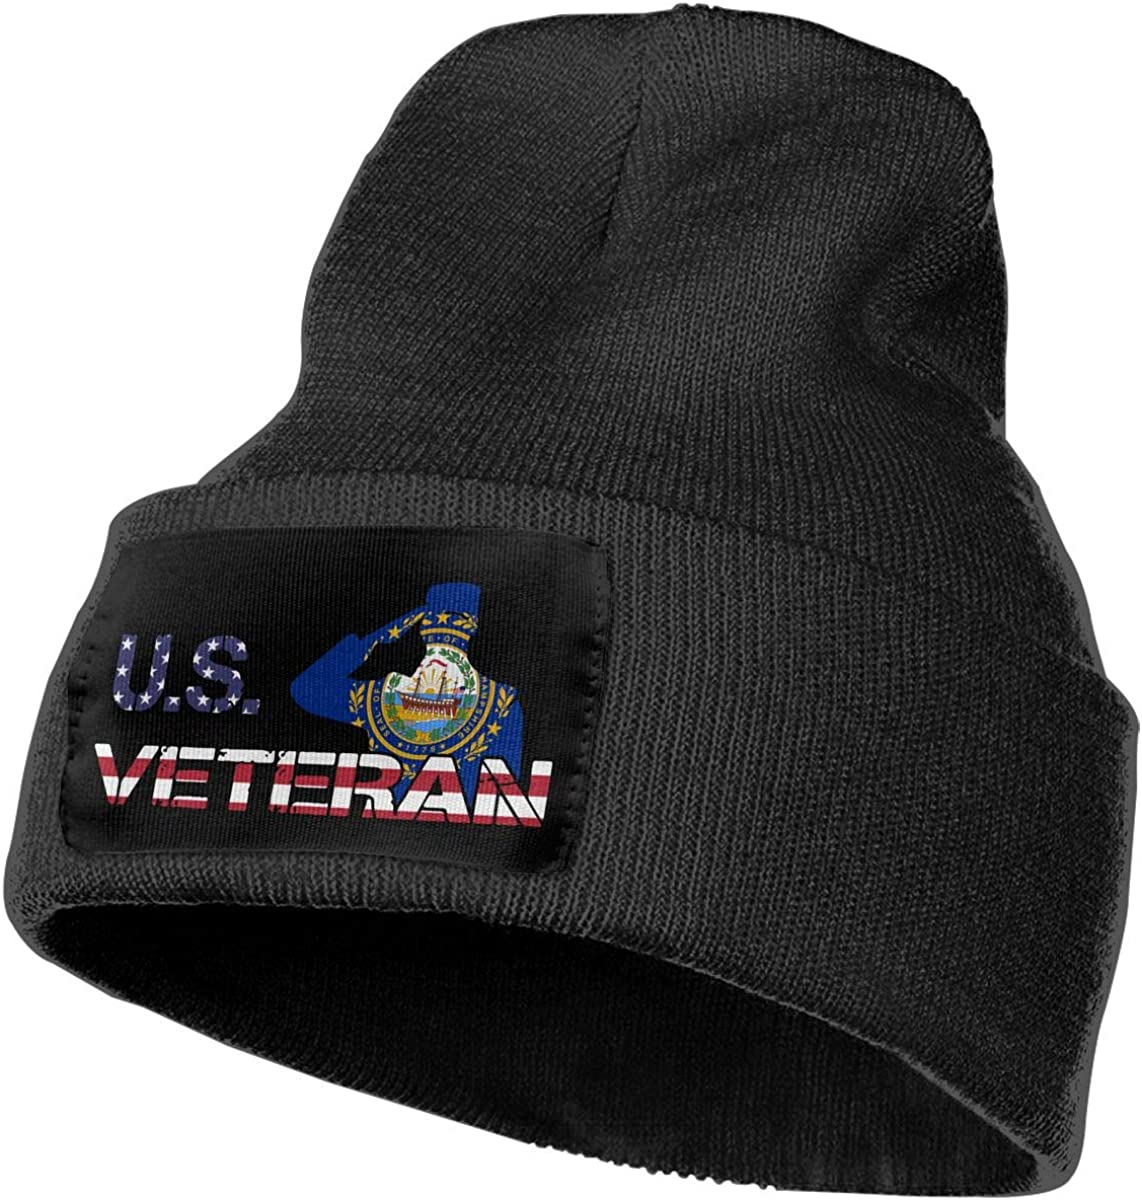 COLLJL-8 Men//Women American Veterans Day New Hampshire Flag Outdoor Stretch Knit Beanies Hat Soft Winter Knit Caps